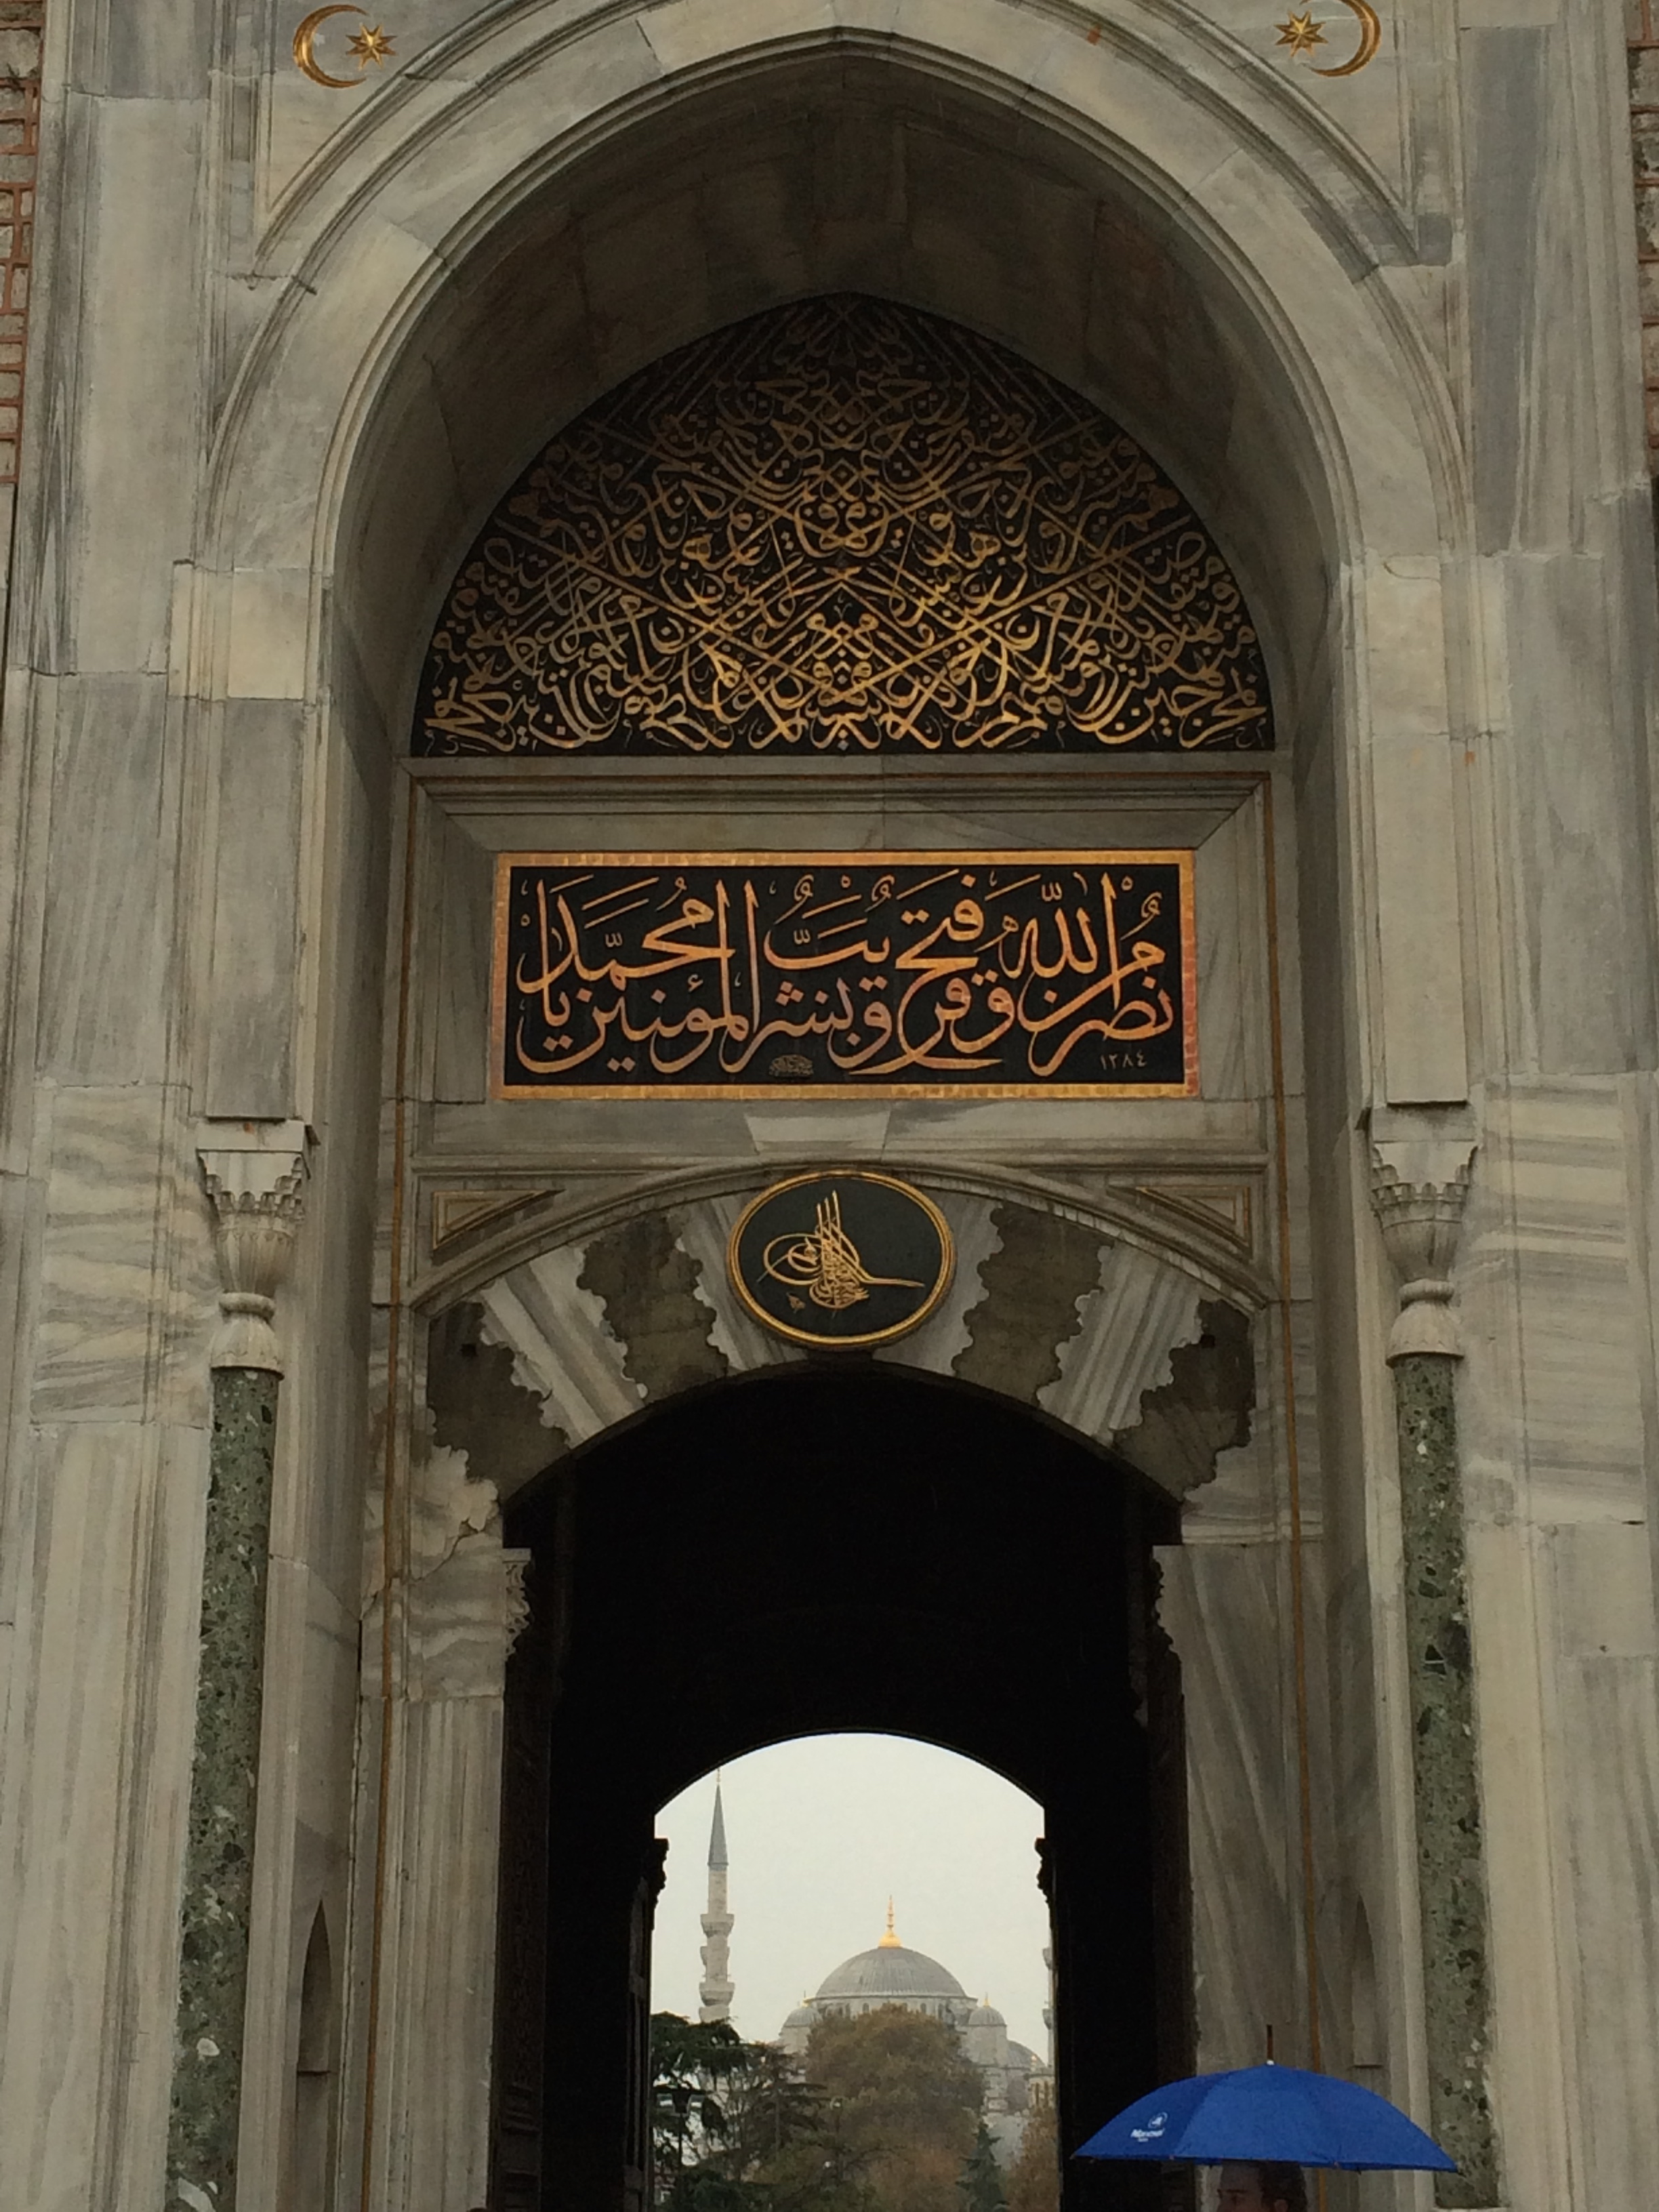 The entrance to the Topkapi Palace with the Blue Mosque in the background.